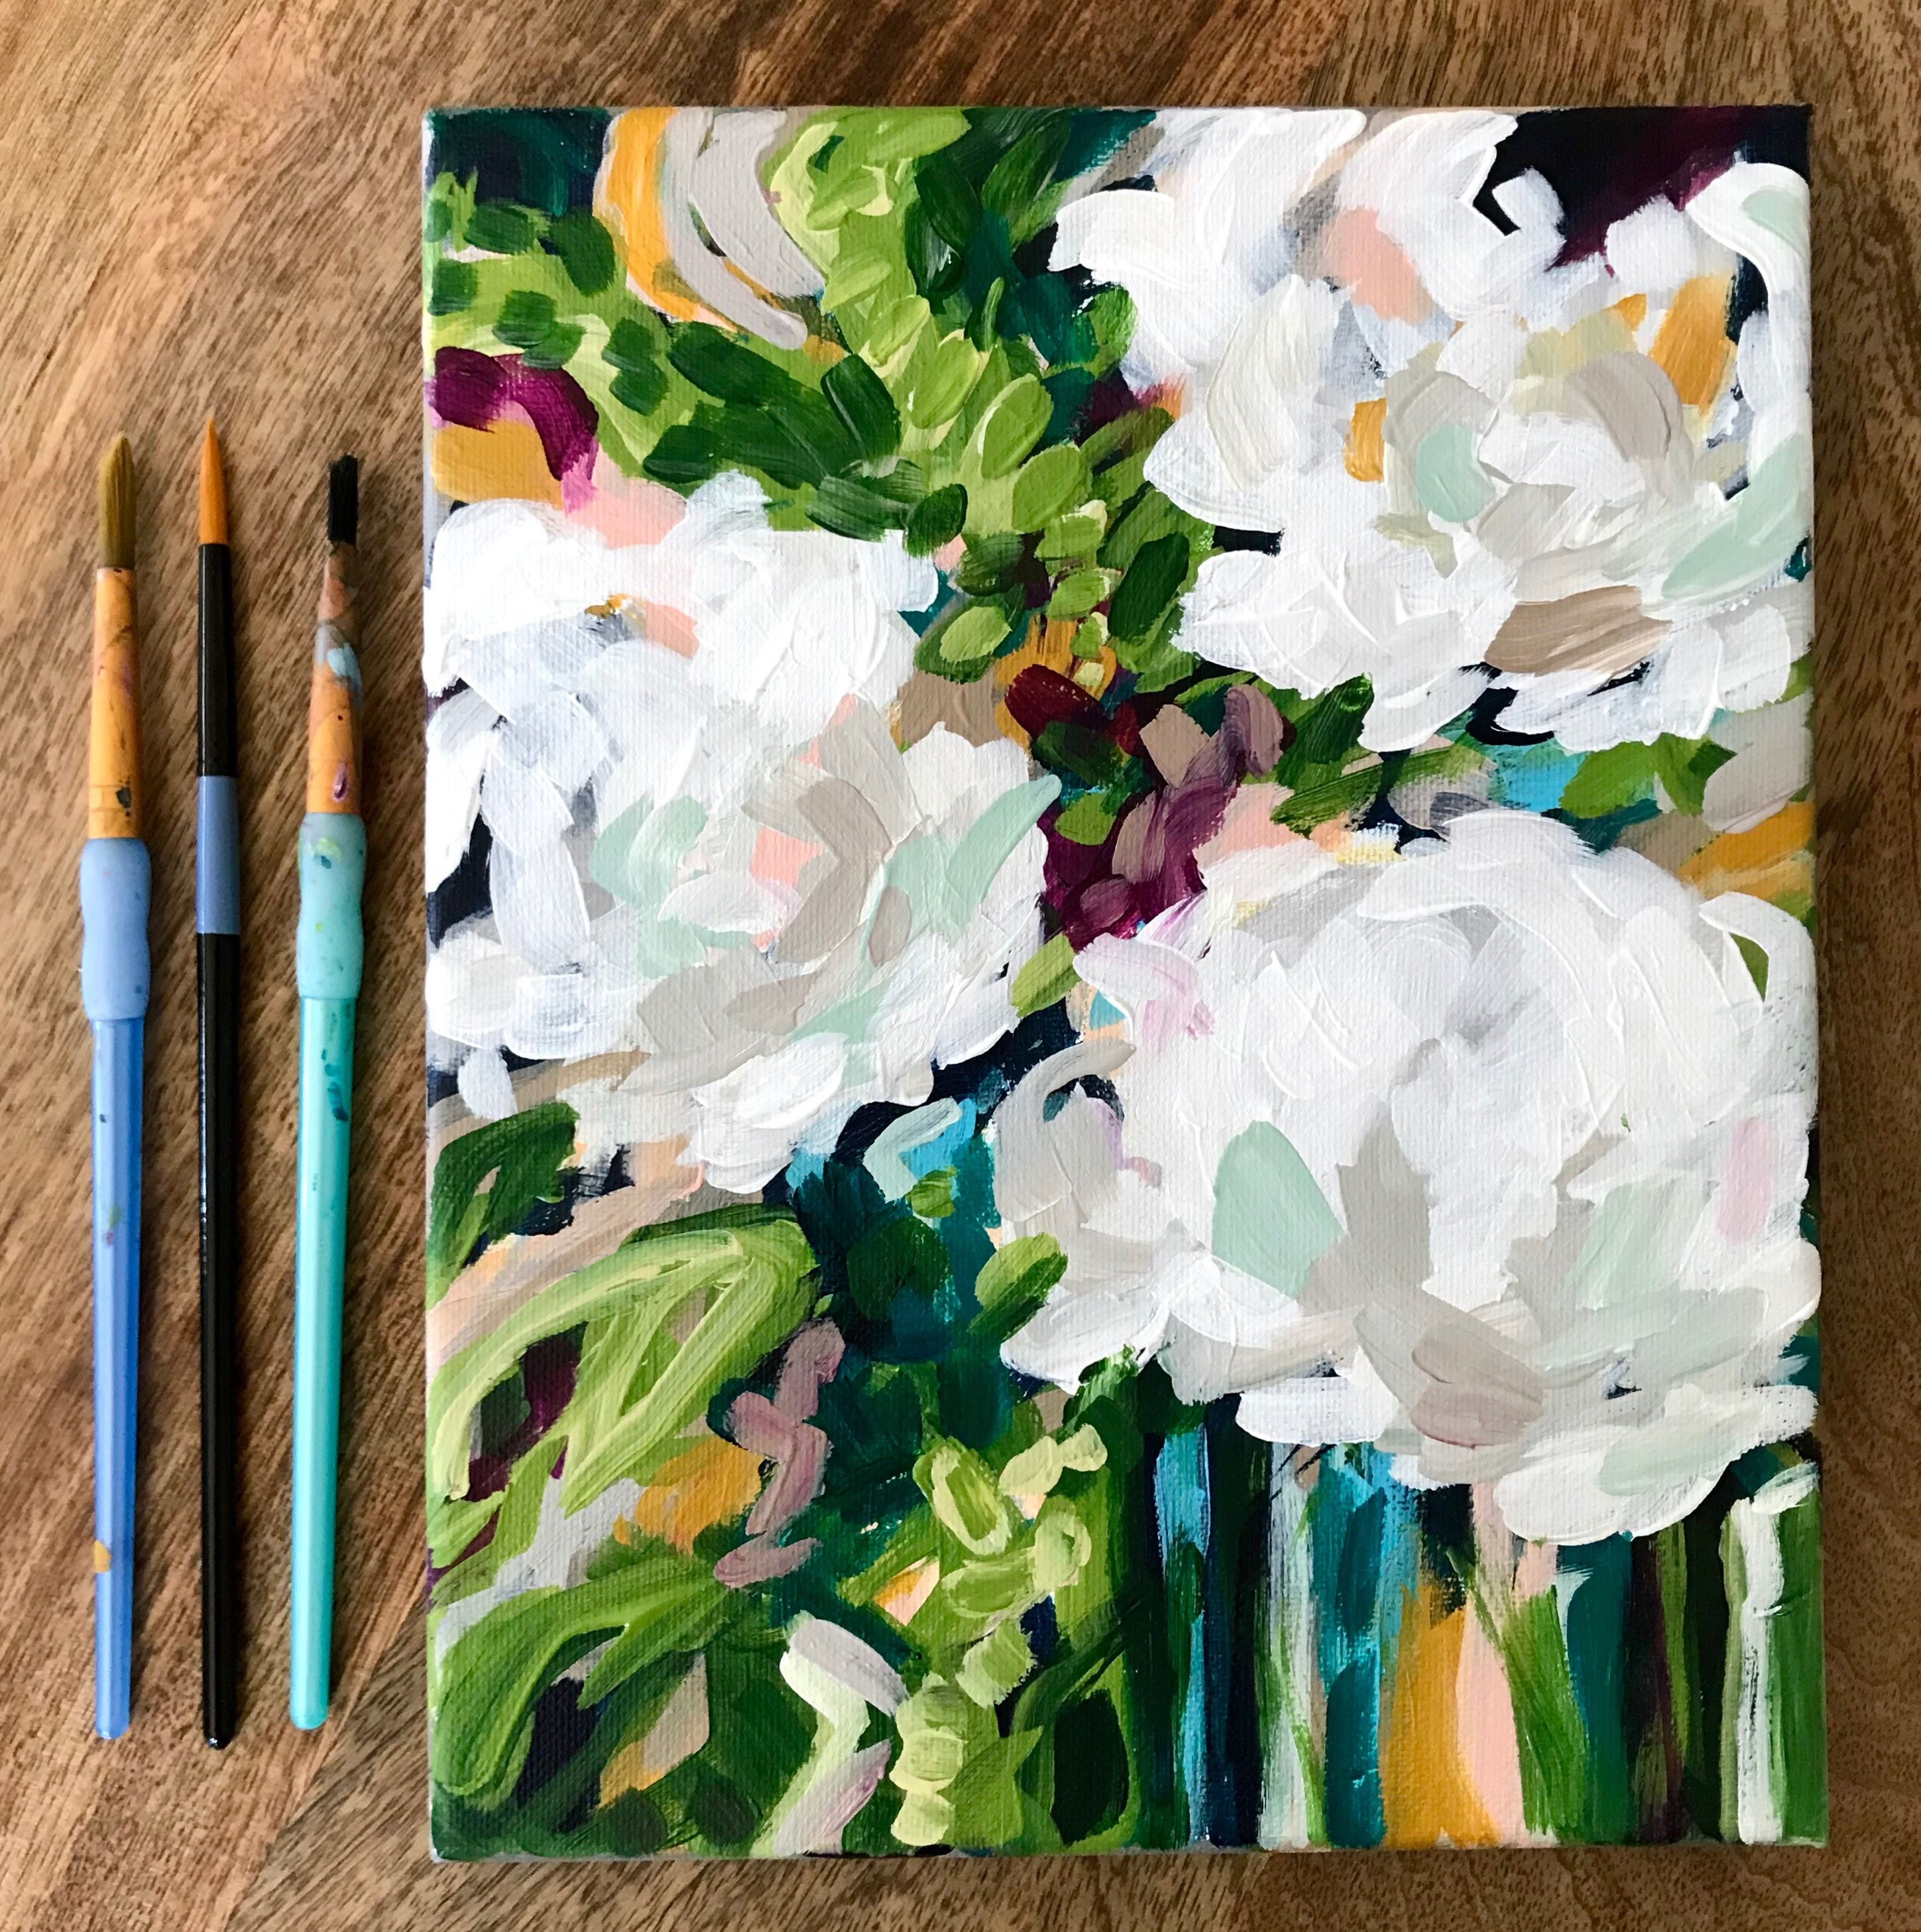 Simple Abstract Flower Painting Classes For Beginners With Step By